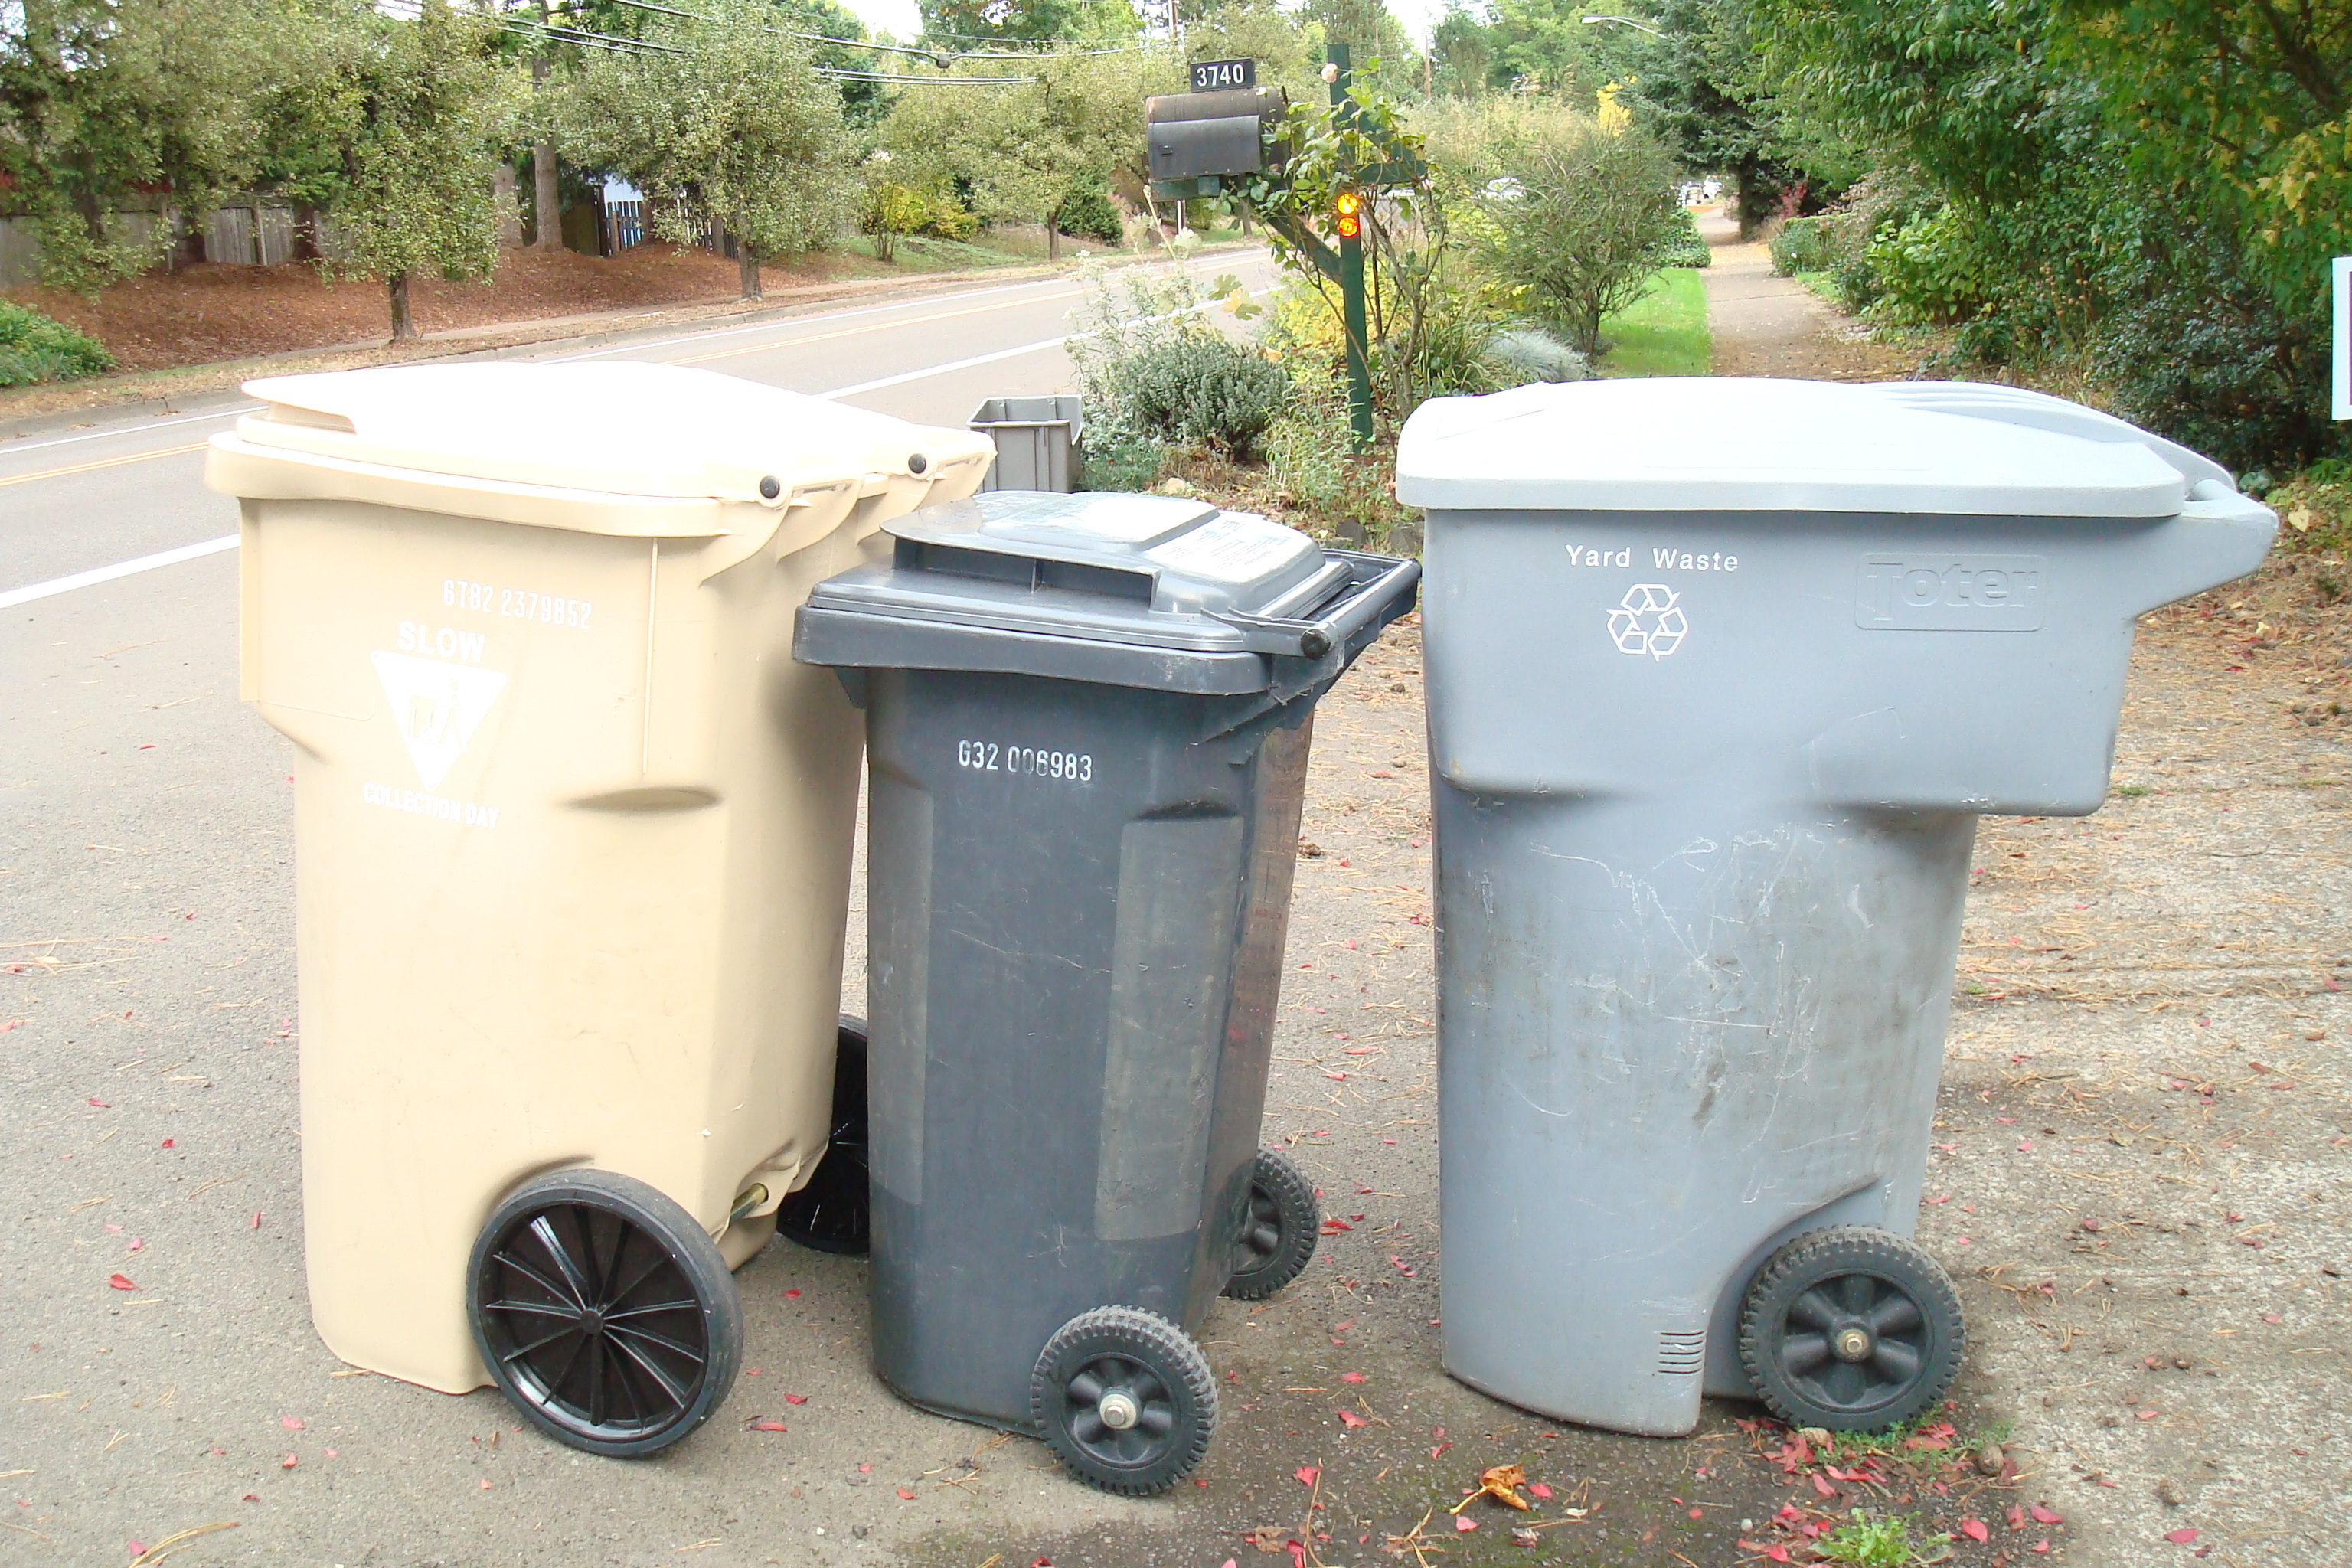 Recycling bin, trash can, yard waste bin at Corvallis curbside (from left to right)